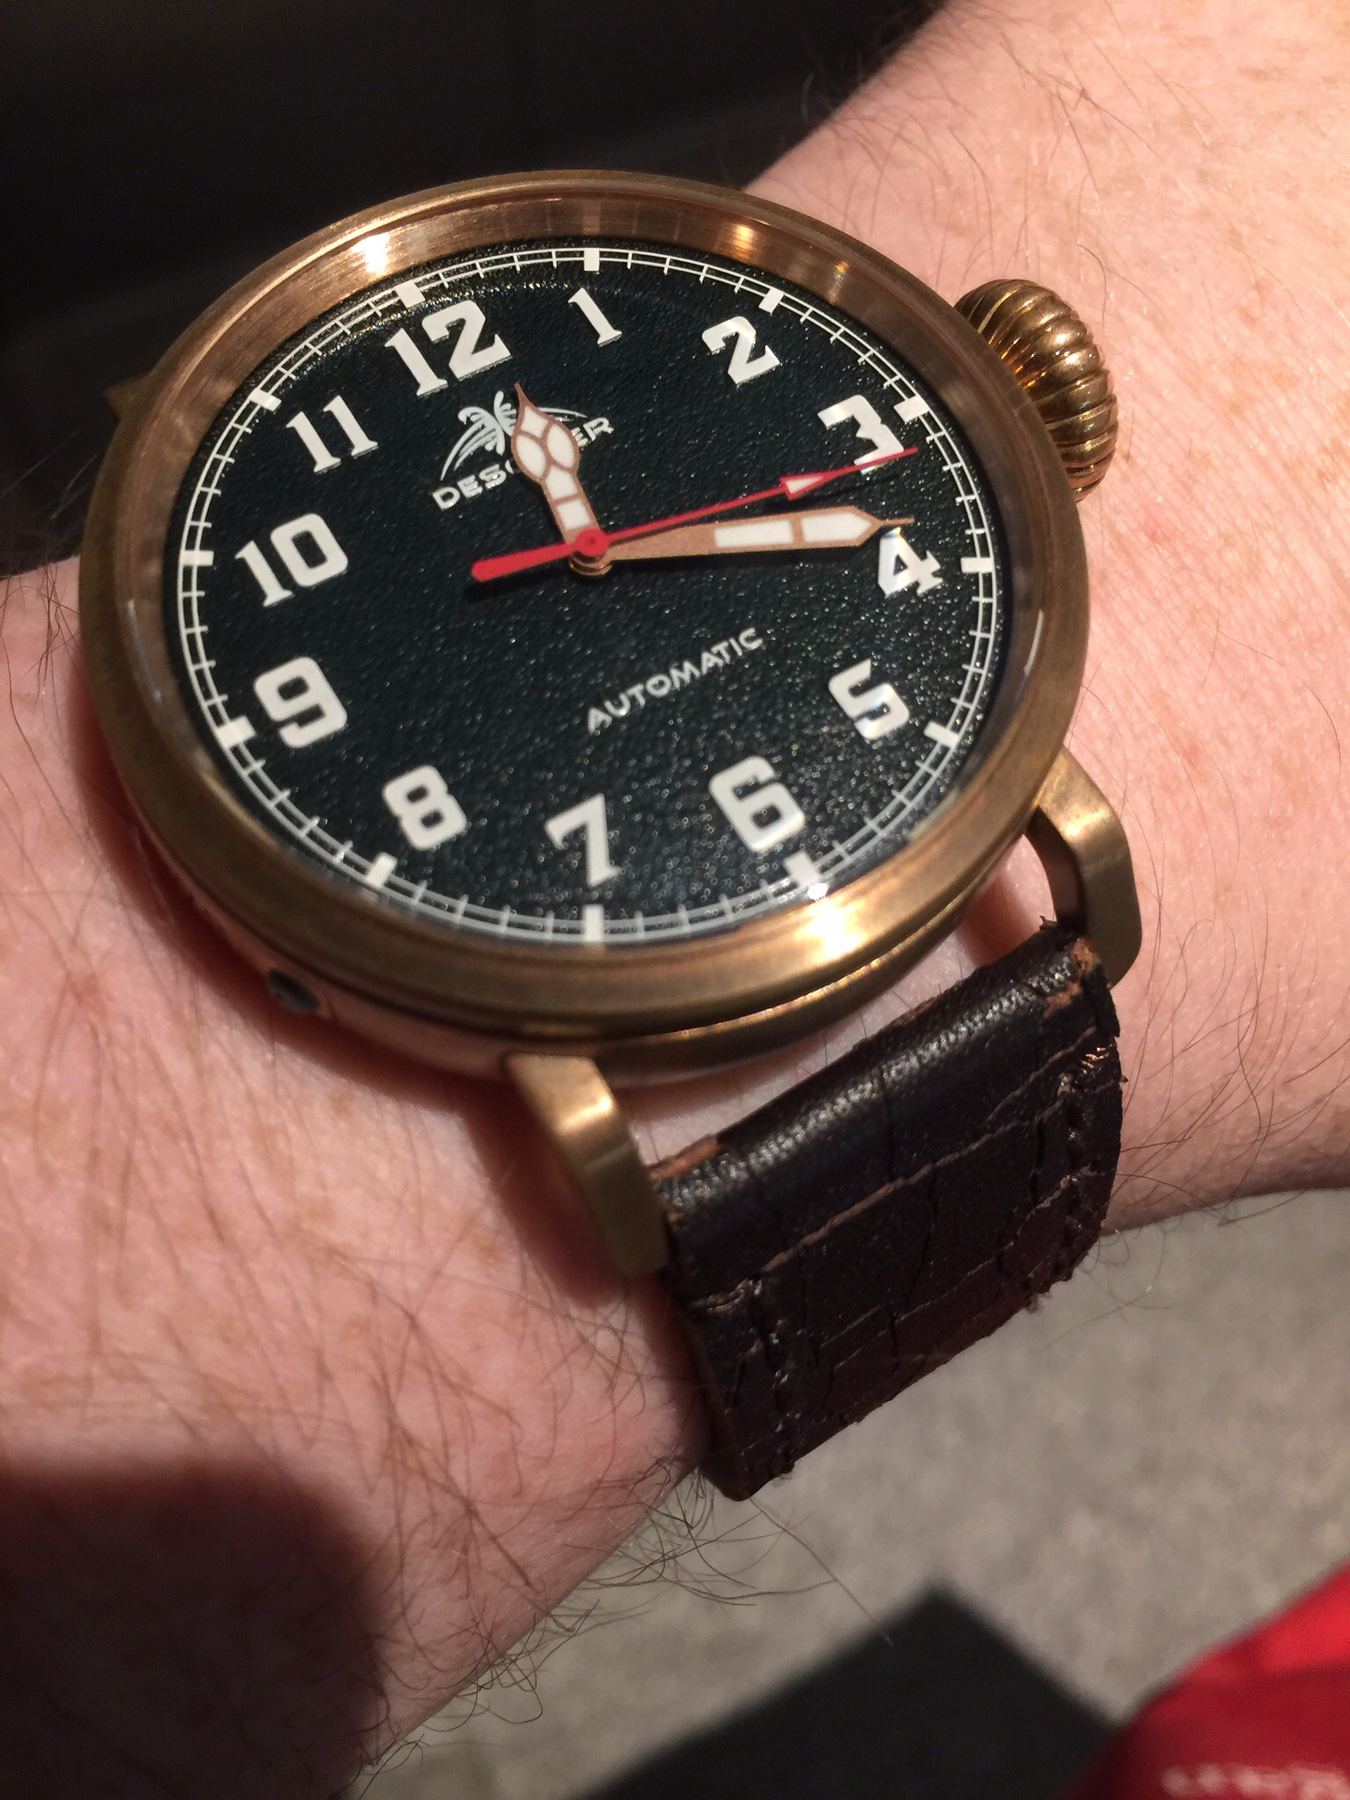 d19c140efce Help on 42mm+ watches that have vintage look (maybe pilot style )